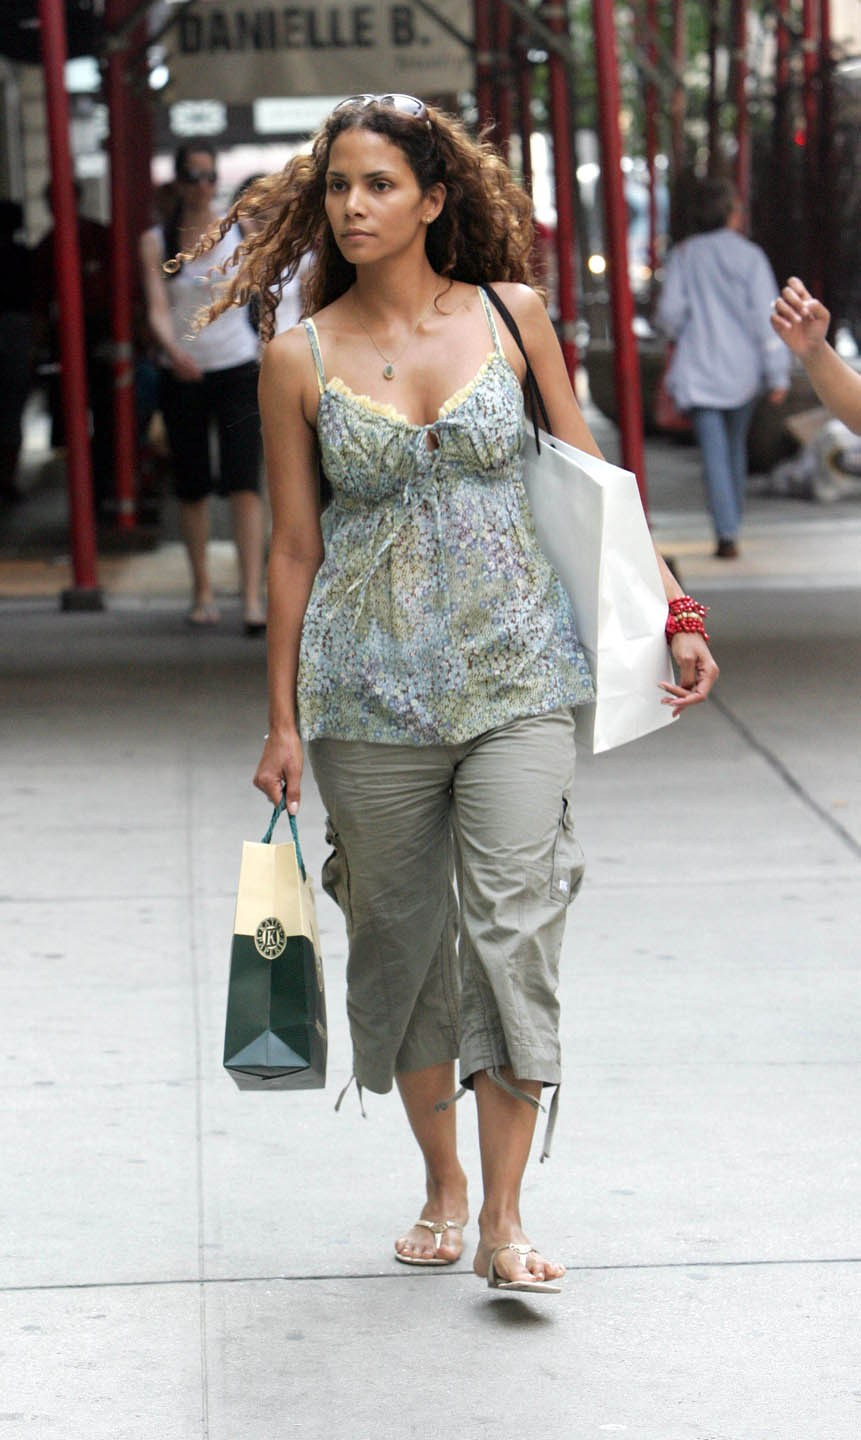 Halle Berry Fashion Model Photo Stills Halle Berry Fashion Model